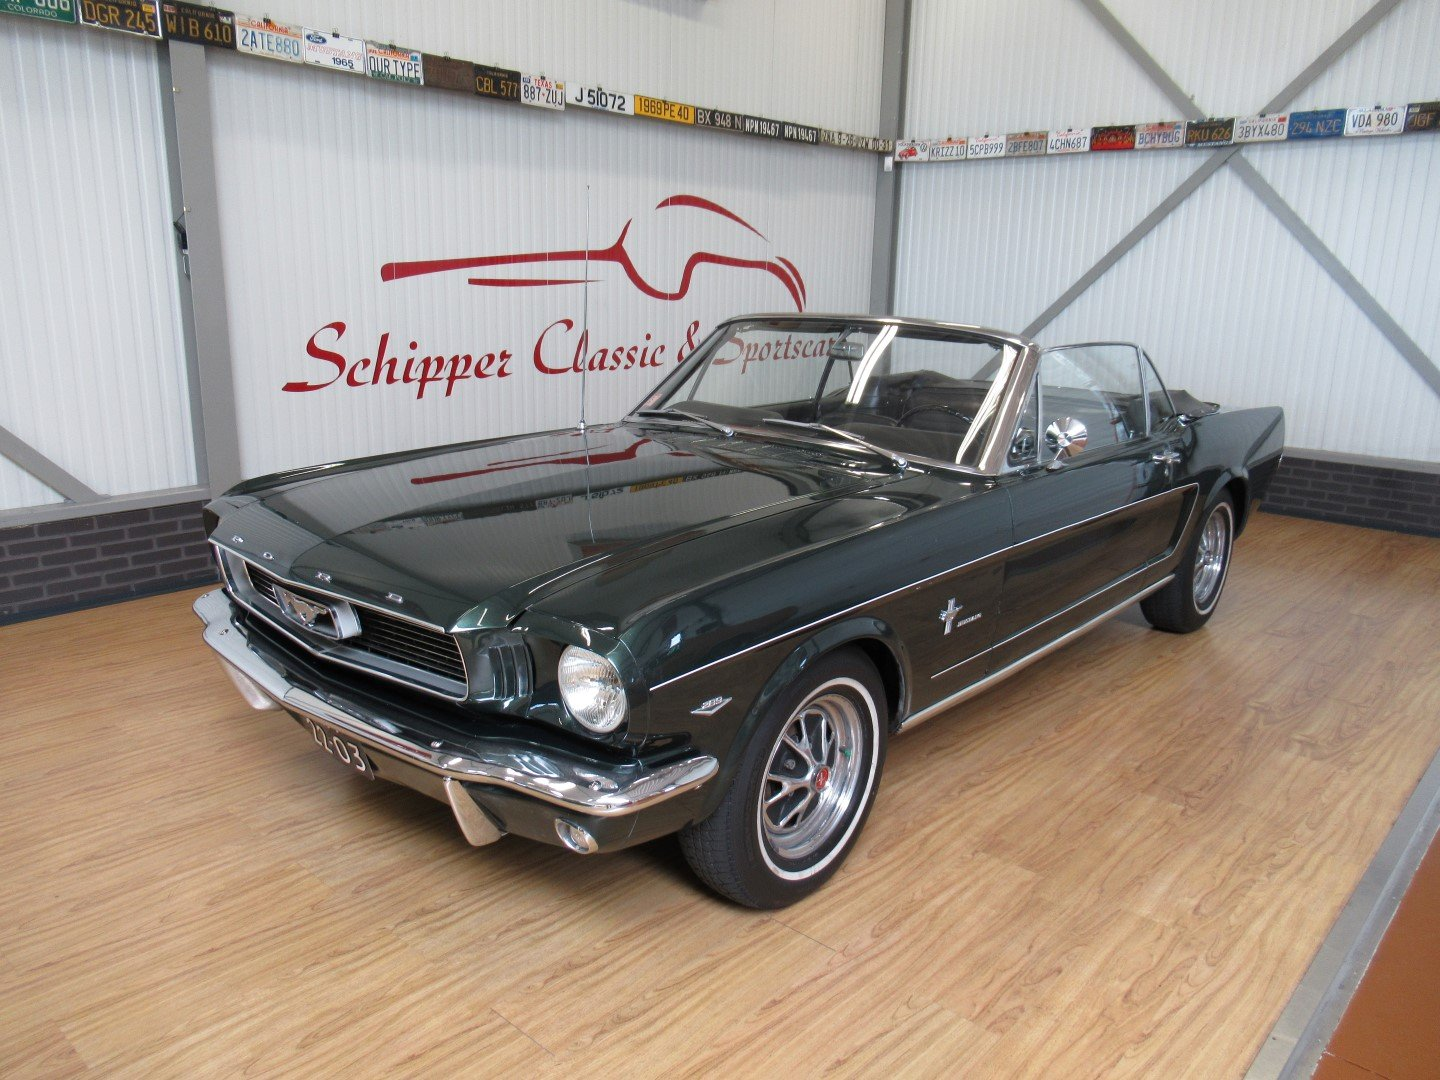 1966 Ford Mustang 289 V8 Cabrio 4 Speed Manual Second owner For Sale (picture 1 of 6)